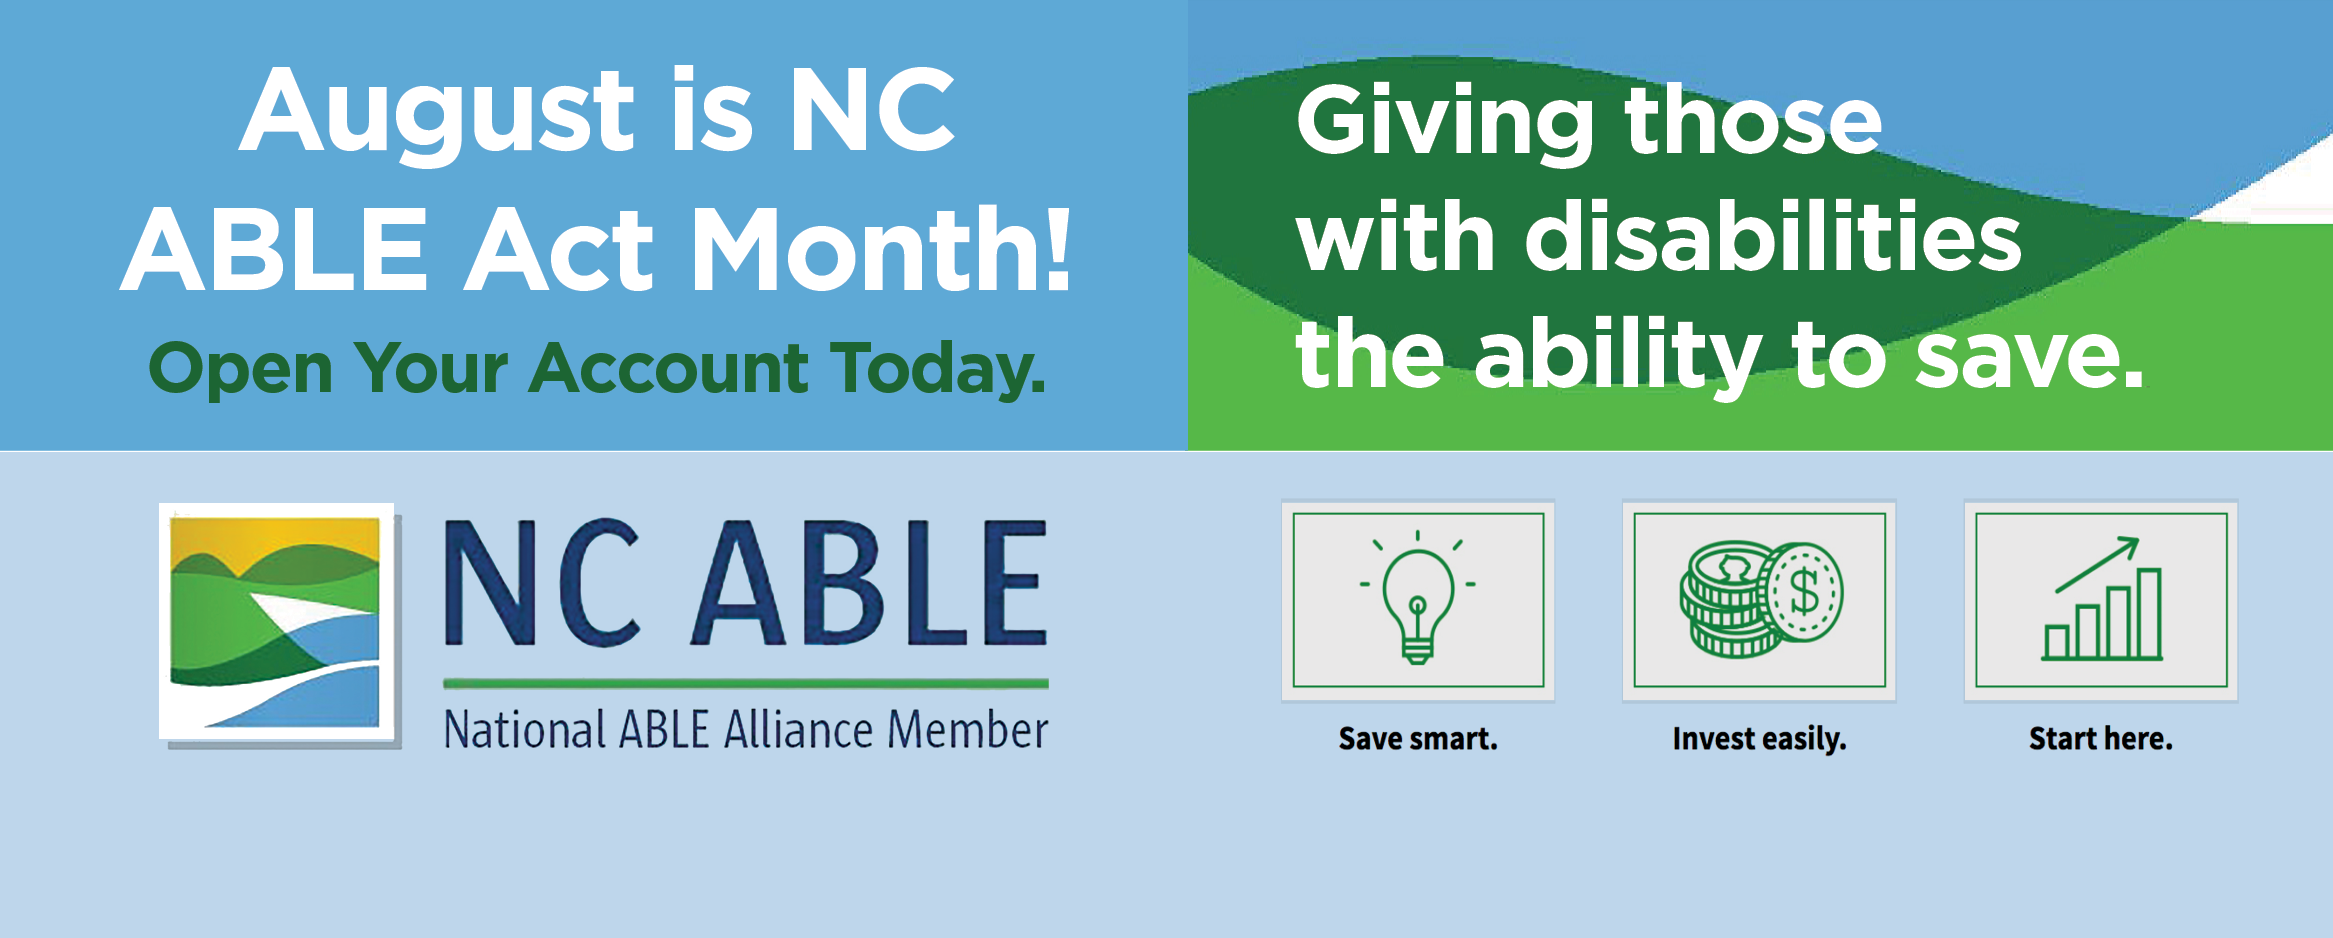 August is NC ABLE Act Month! Open Your Account Today.